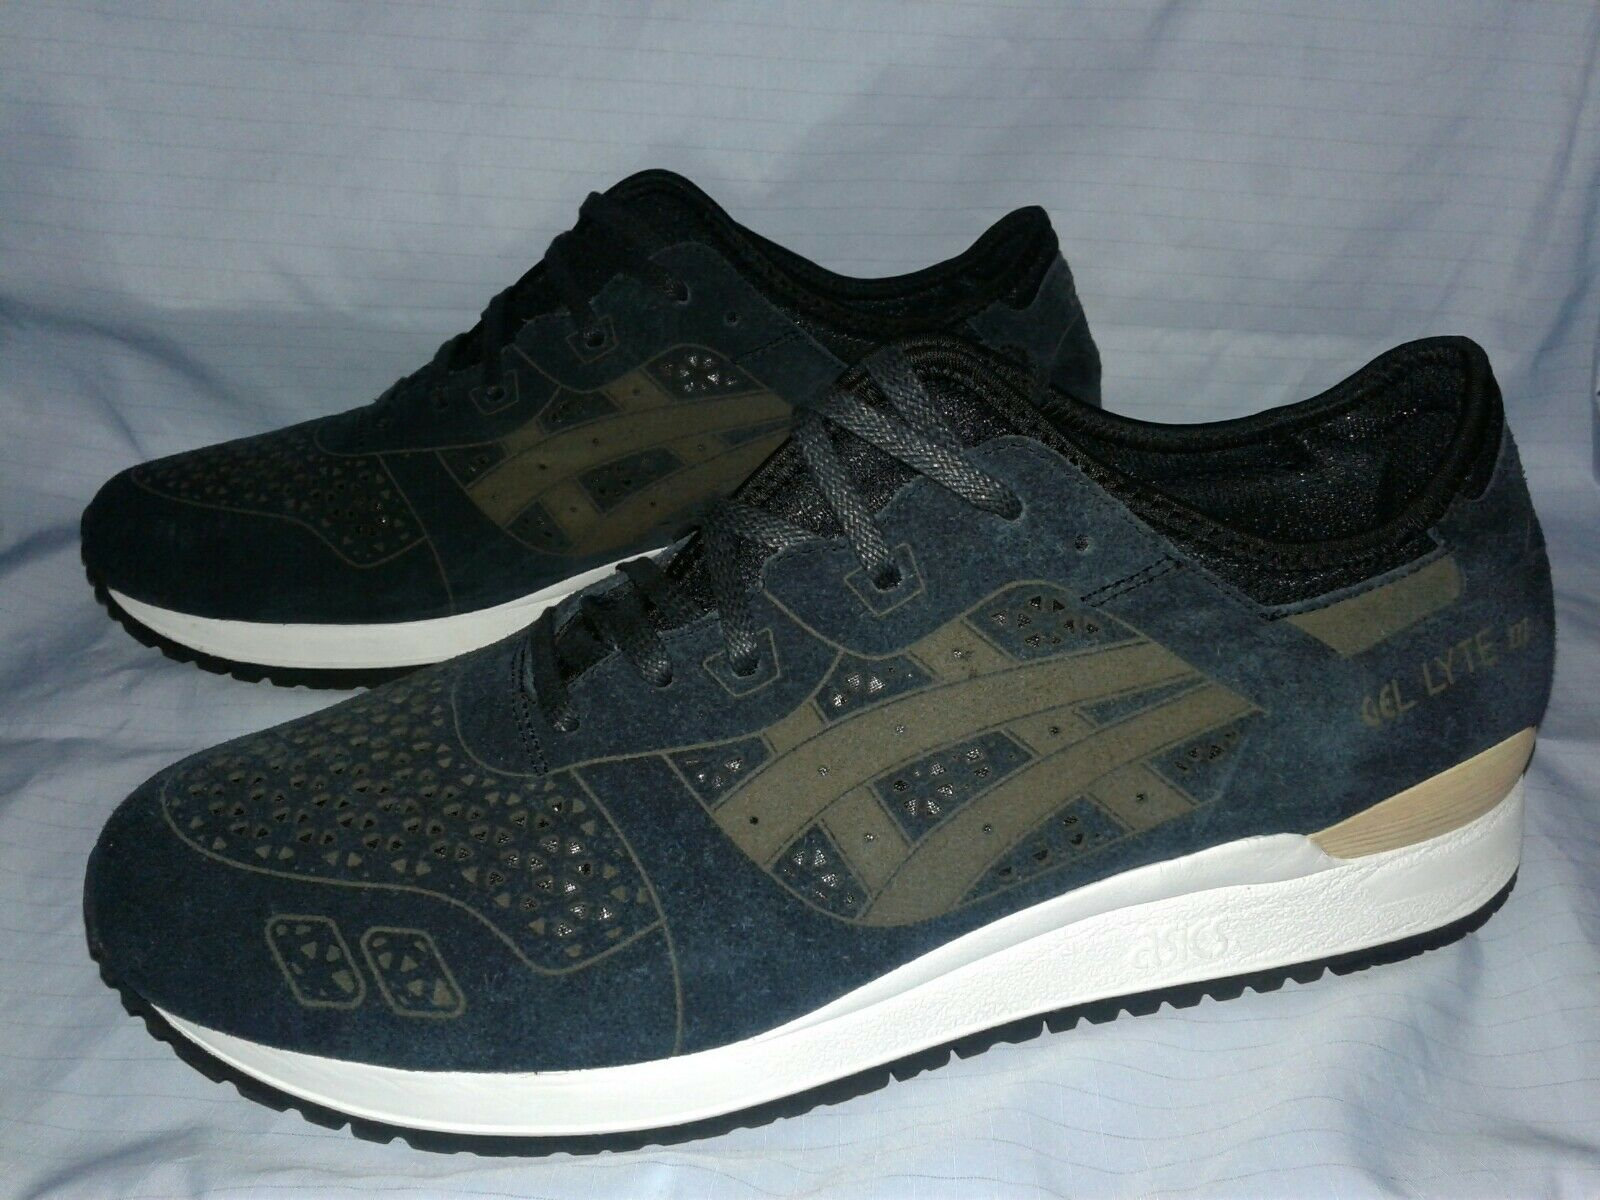 06-255 ASICS Tiger Men's GEL-Lyte III shoes , Size  12 CLASSIC RETRO STYLE